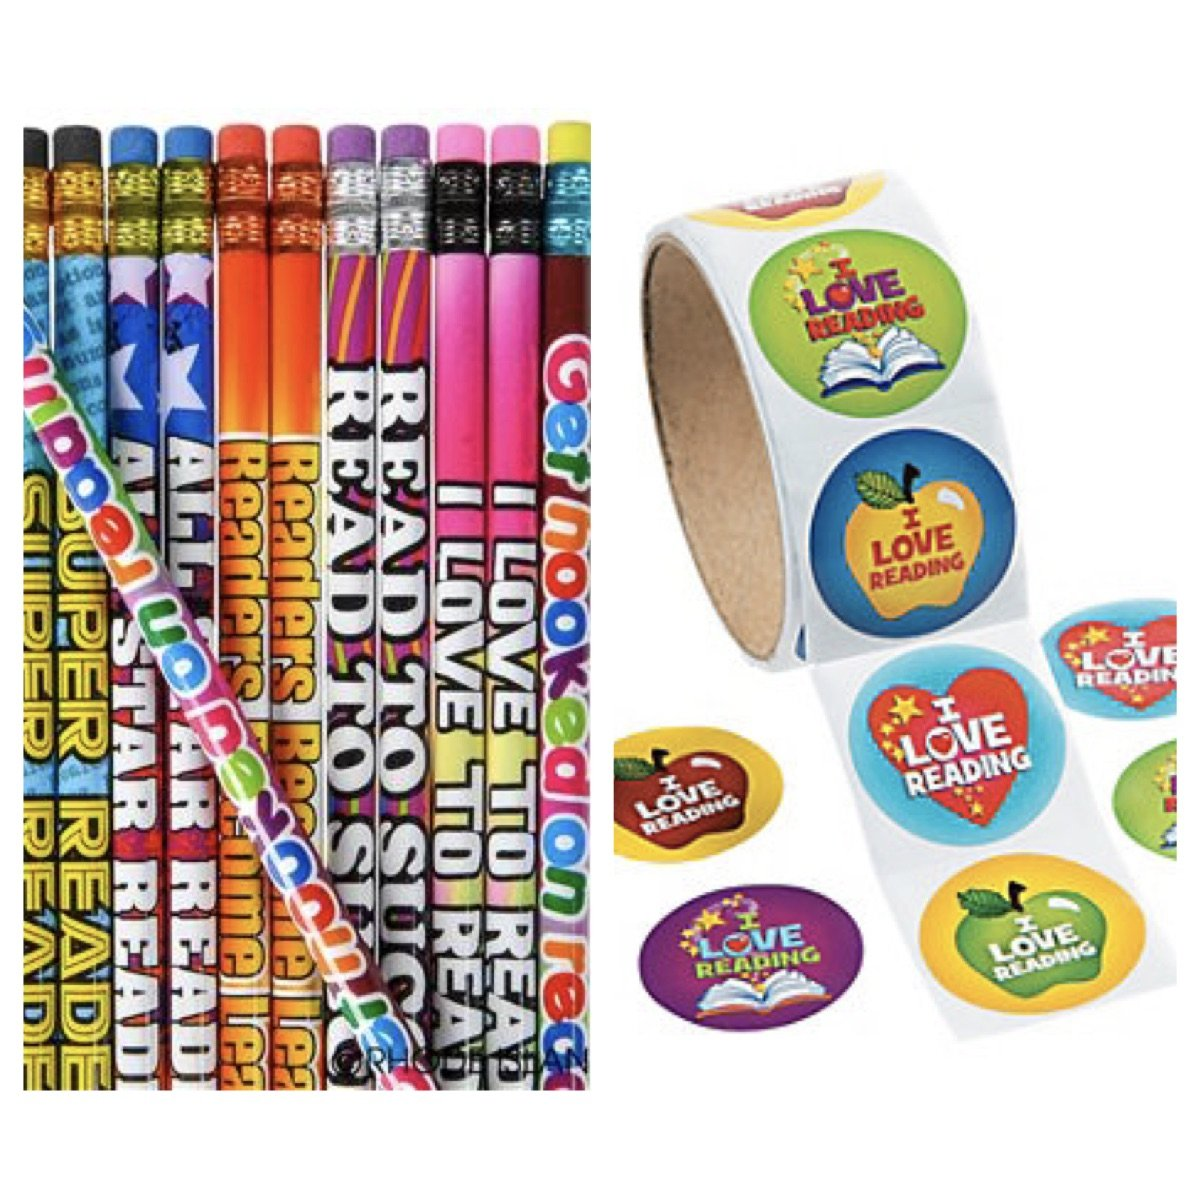 144 READING PENCILS & 400 Colorful I Love to READ - STICKERS Motivational - GREAT Reader Student #2 Lead - I LOVE to READ - PARTY FAVORS - CLASSROOM Rewards TEACHER Motivation